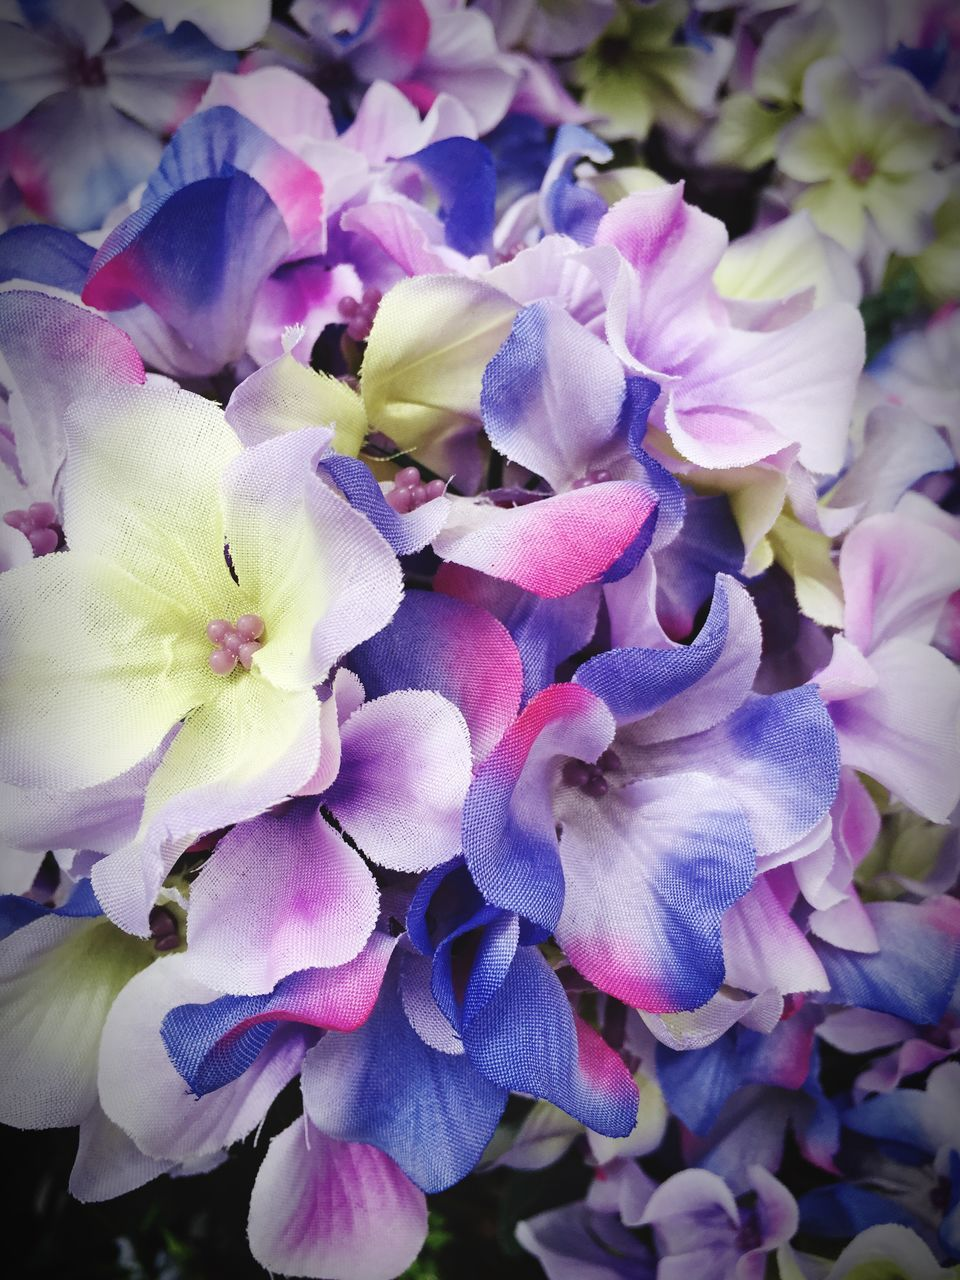 flower, petal, beauty in nature, fragility, nature, flower head, plant, freshness, no people, growth, hydrangea, close-up, blooming, day, outdoors, springtime